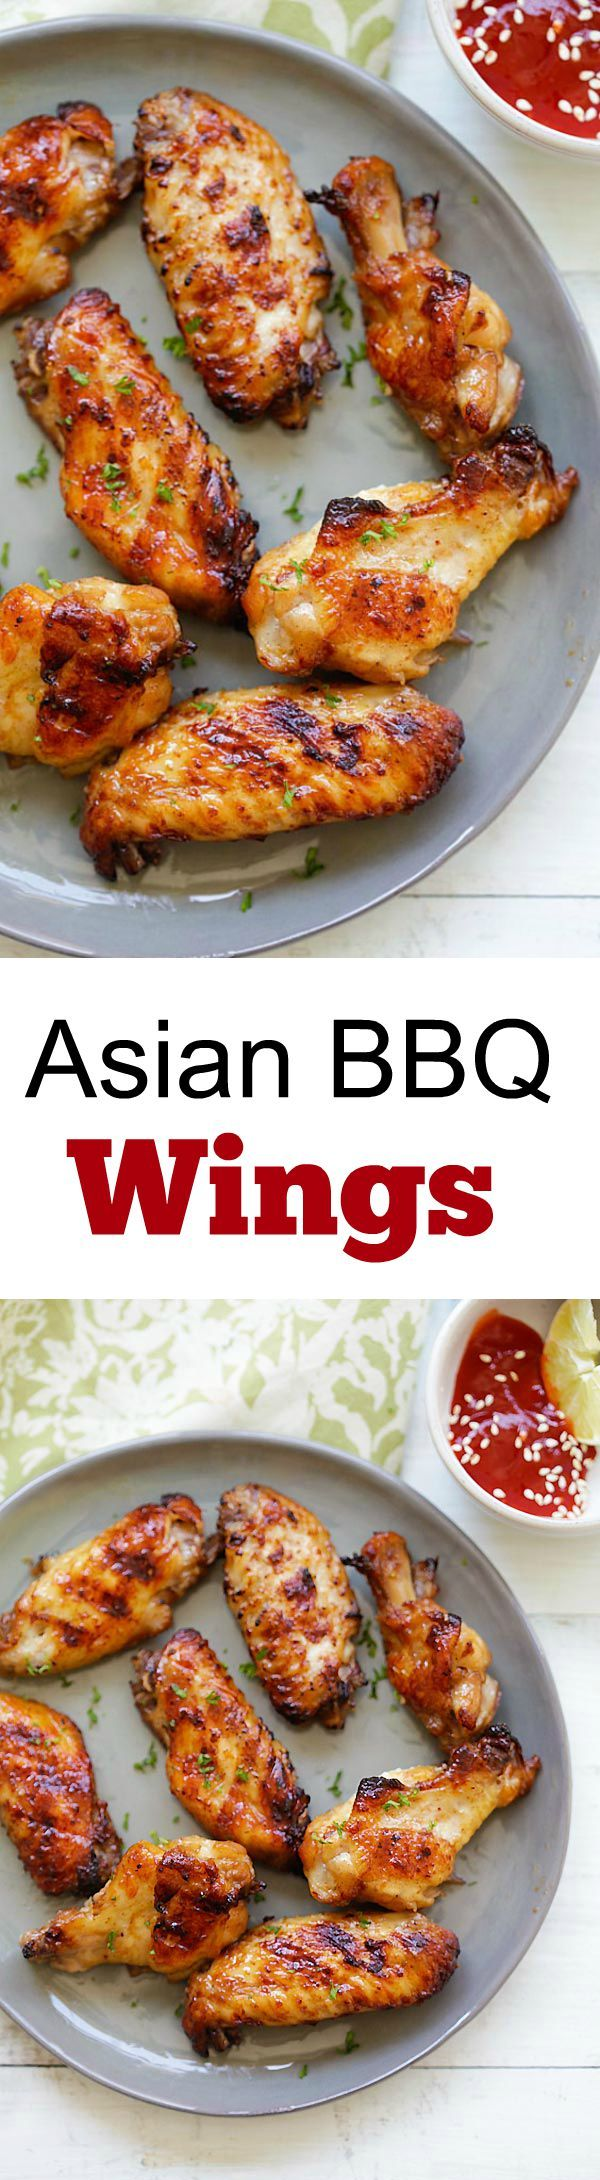 Asian BBQ Wings – Amazing chicken wings marinated with ginger, garlic, soy sauce and honey. Easy recipe you must try in summer! | rasamalaysia.com